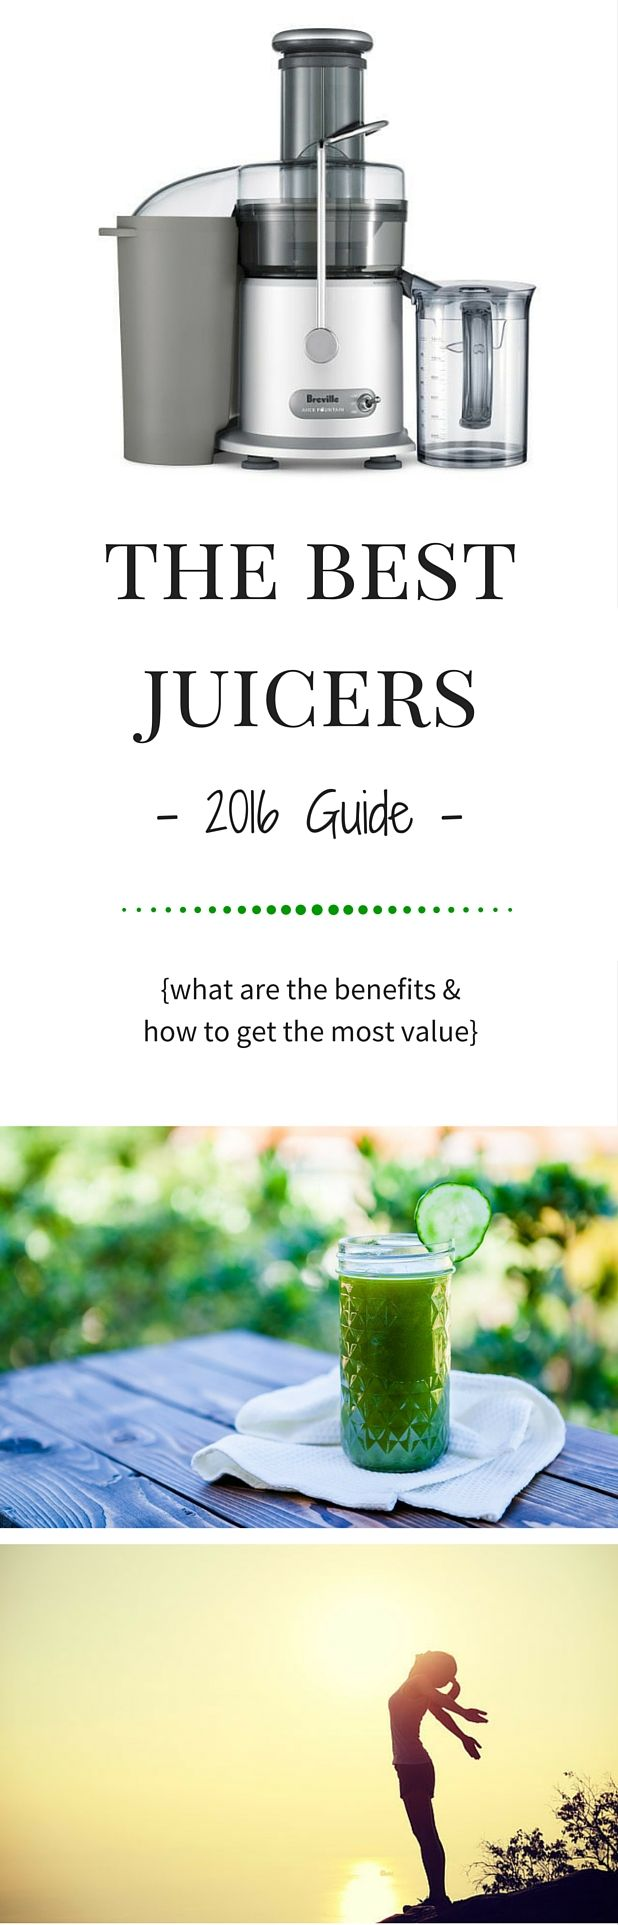 We absolutely love juicing! This guide is intended to give you a good overview of the best juicers on the market in each of the 3 categories to get you the most value for your money.